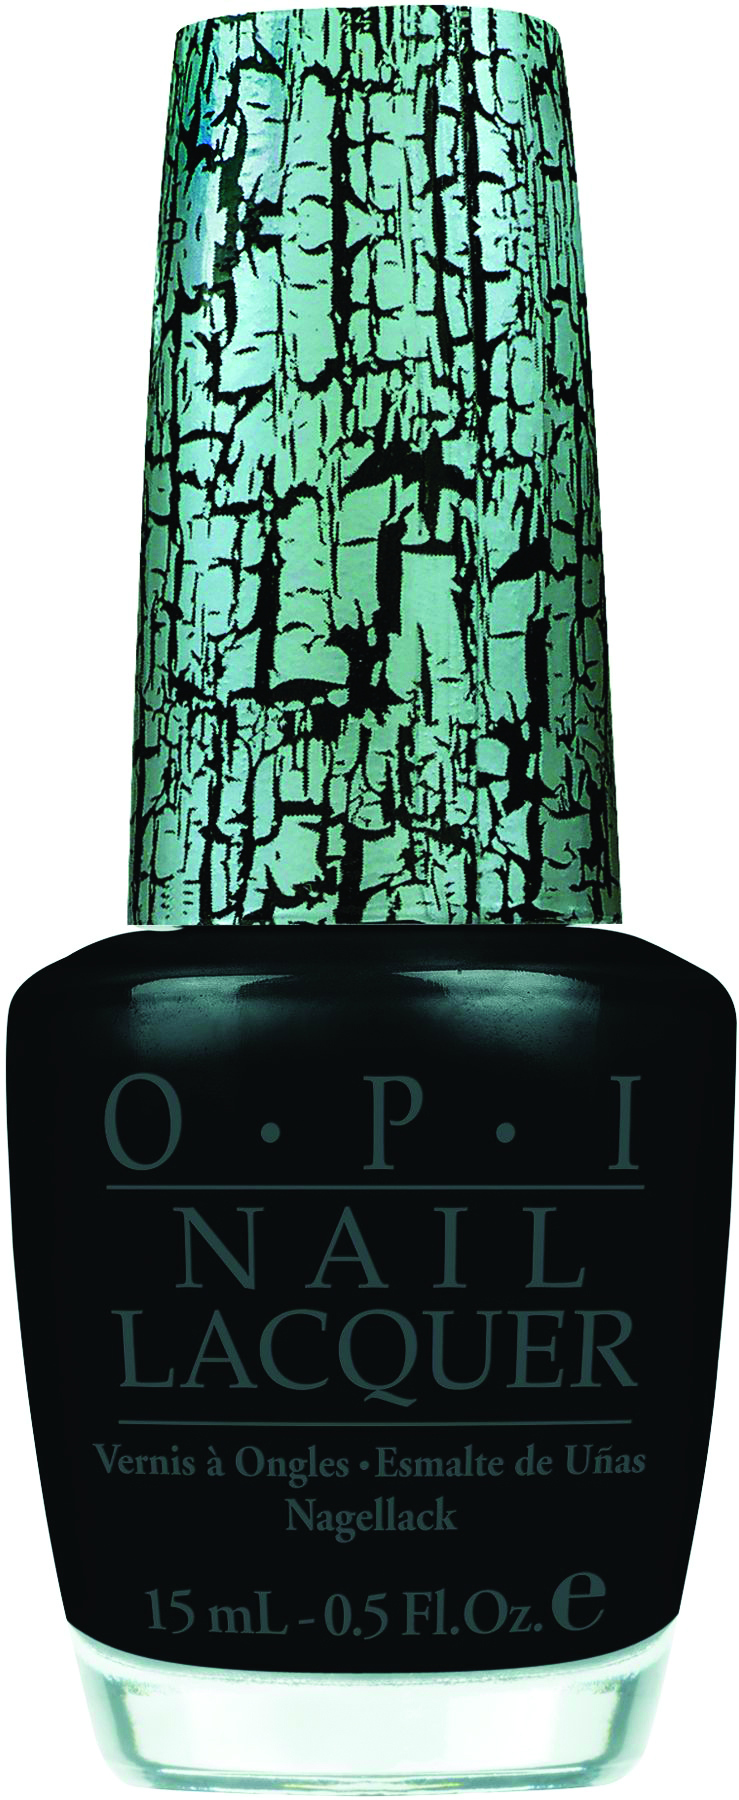 <p>FAVORITE NEW PRODUCT</p> <p>1. <strong>OPI:</strong> Shatter by OPI</p> <p>2. <strong>Young Nails:</strong> ManiQ Color Gel Polish</p> <p>3. <strong>Hand &amp; Nail Harmony:</strong> Gelish Hard Gel &nbsp;&nbsp;&nbsp;&nbsp;&nbsp;&nbsp;&nbsp;&nbsp;&nbsp;&nbsp;&nbsp;</p> <p>4. <strong>NSI:</strong> Polish Pro Light-Cured Nail Polish</p> <p>5. <strong>CND:</strong> Retention+ Powders</p>